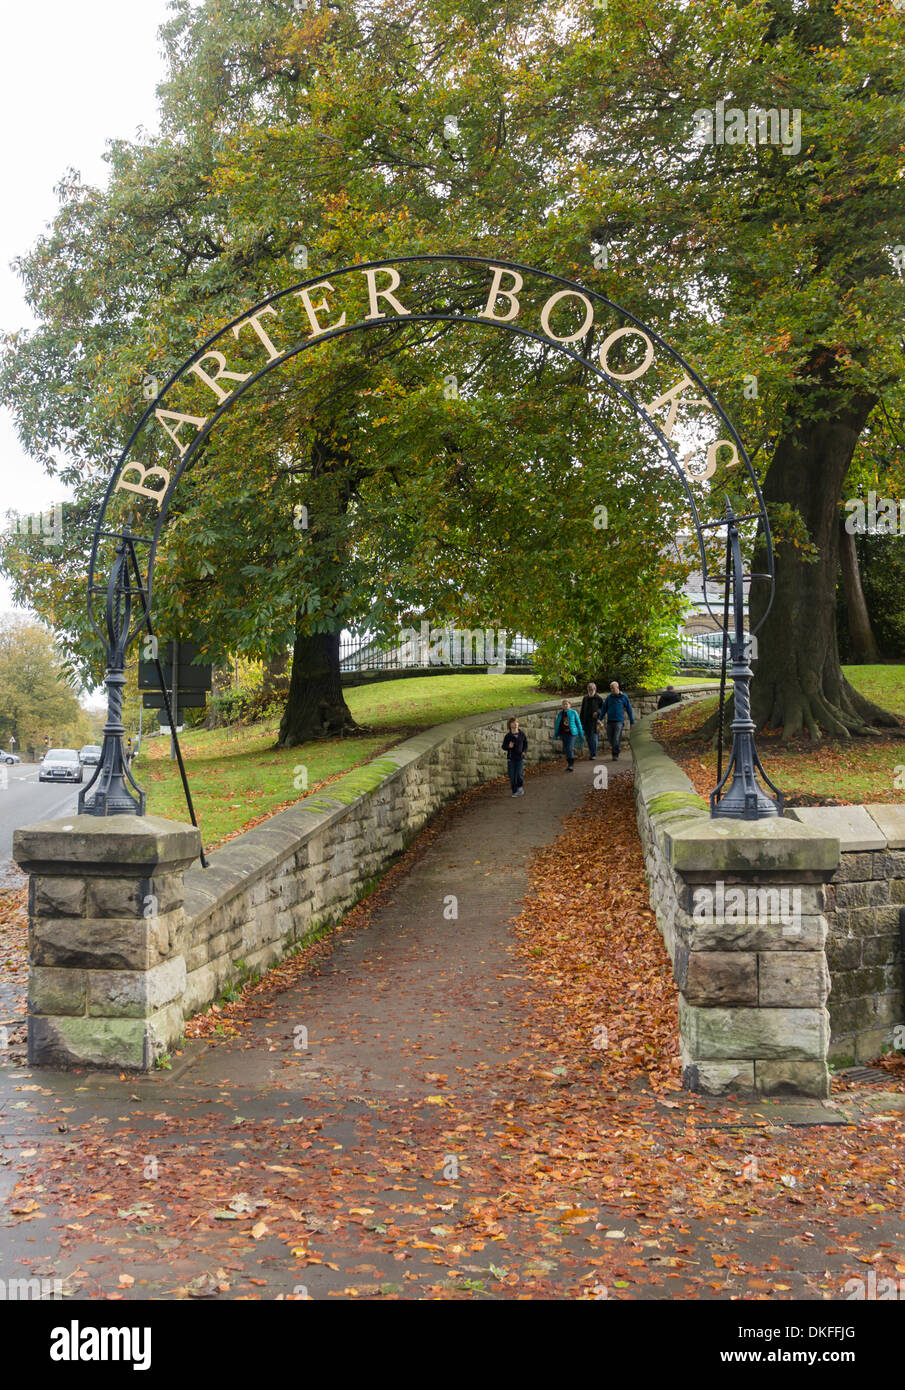 Pedestrian entrance to Barter Books, Alnwick. Barter Books is an extensive secondhand book shop and tourist attraction. - Stock Image